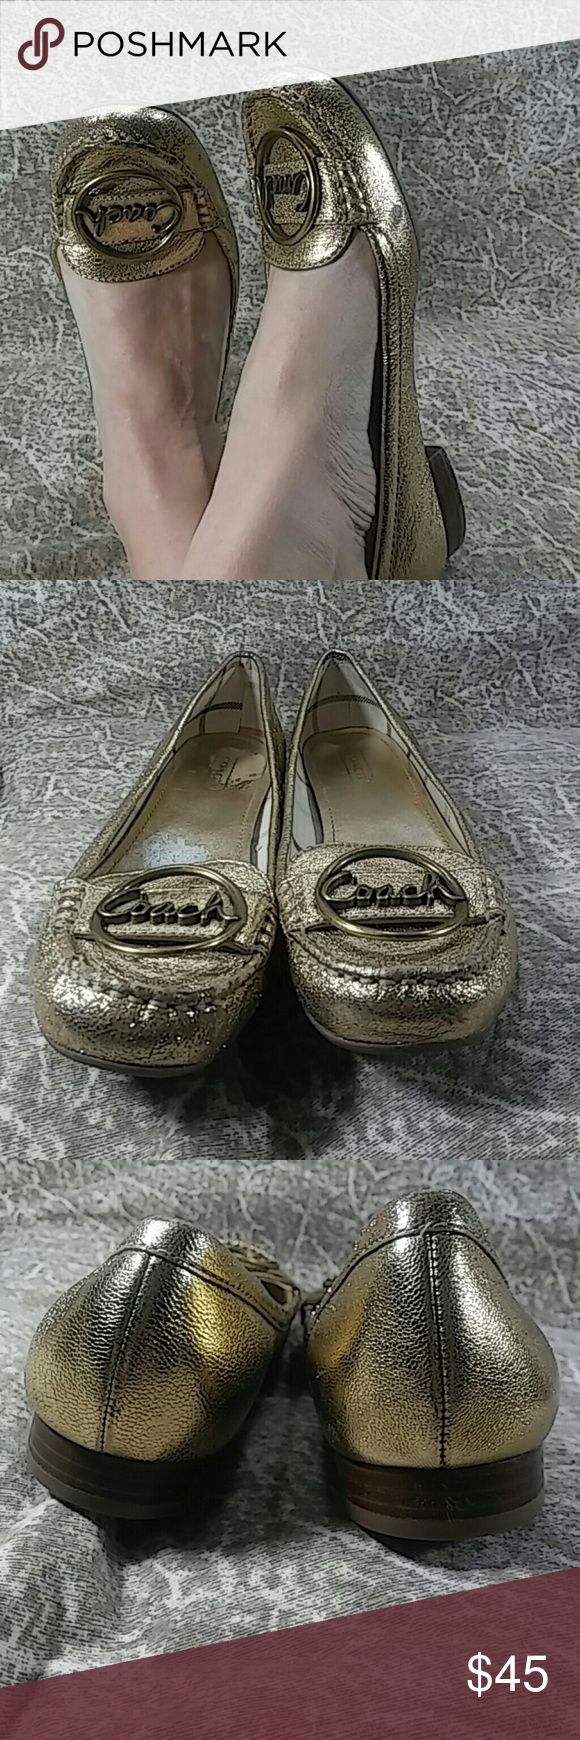 Size 8 gold Coach flats Size 8 gold Coach flats with gold tone metal emblem in good used condition Coach Shoes Flats & Loafers